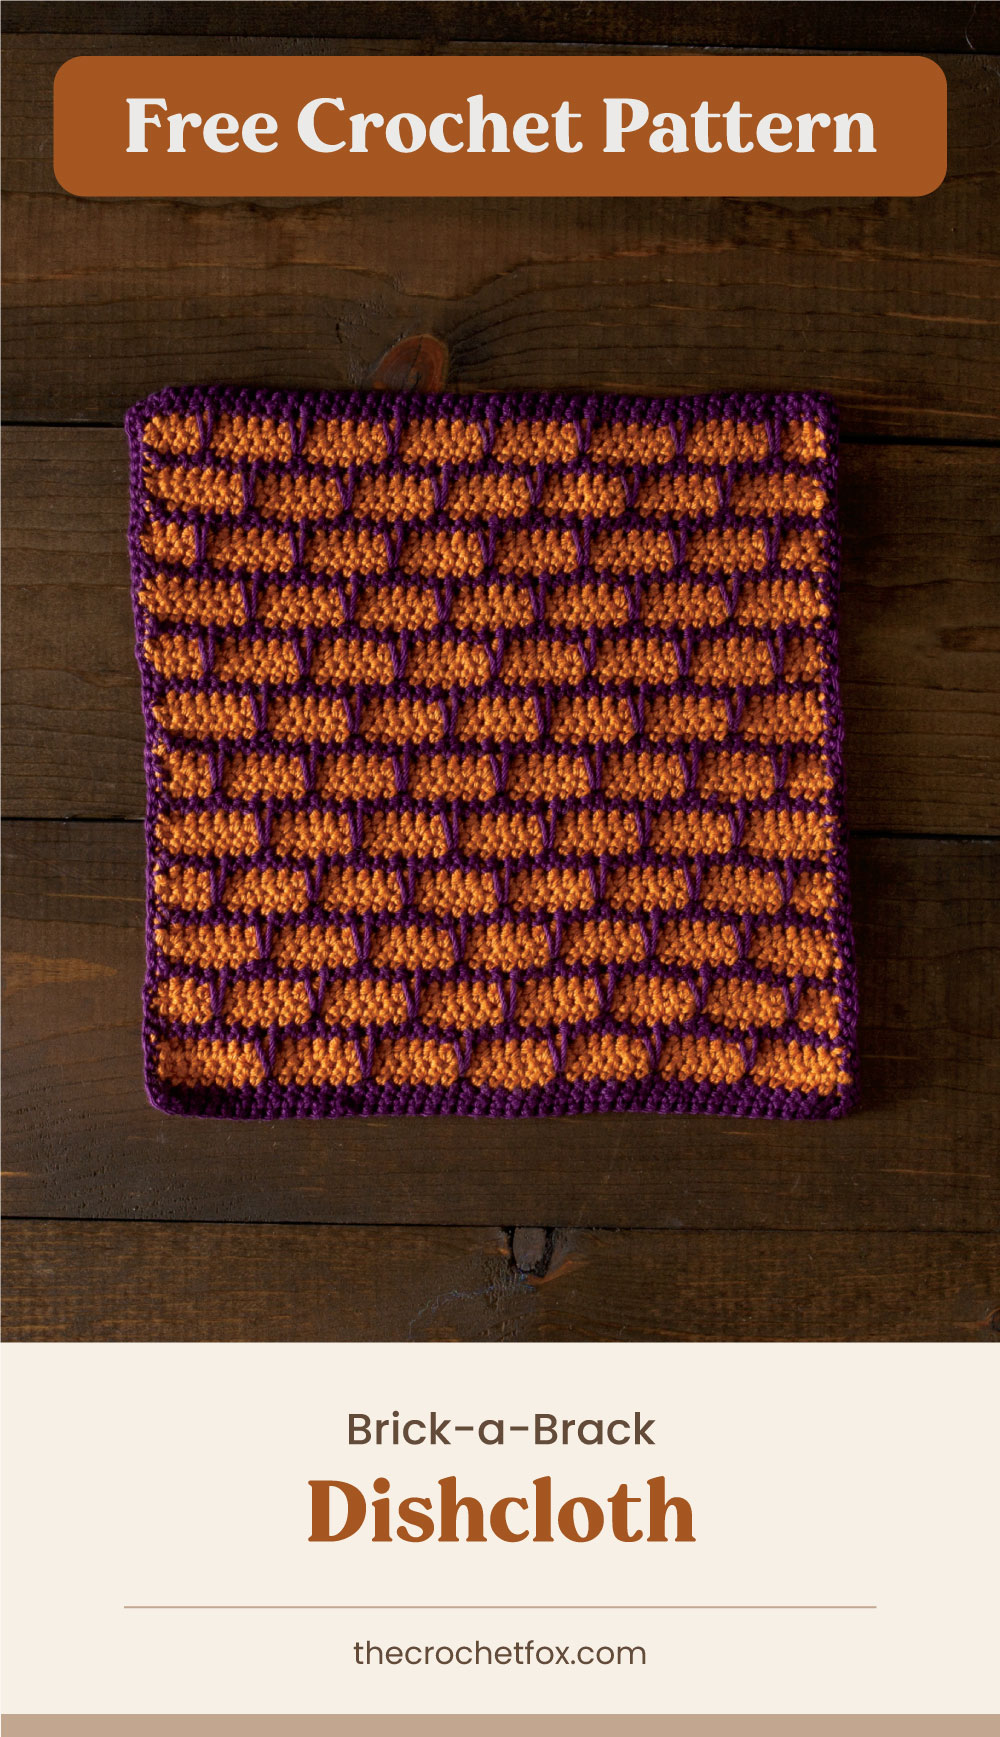 """Text area which says """"Free Crochet Pattern"""" next to an orange and purple crochet dishcloth on a wooden surface followed by another text area which says """"Brick-a-Brack Dishcloth, thecrochetfox.com"""""""